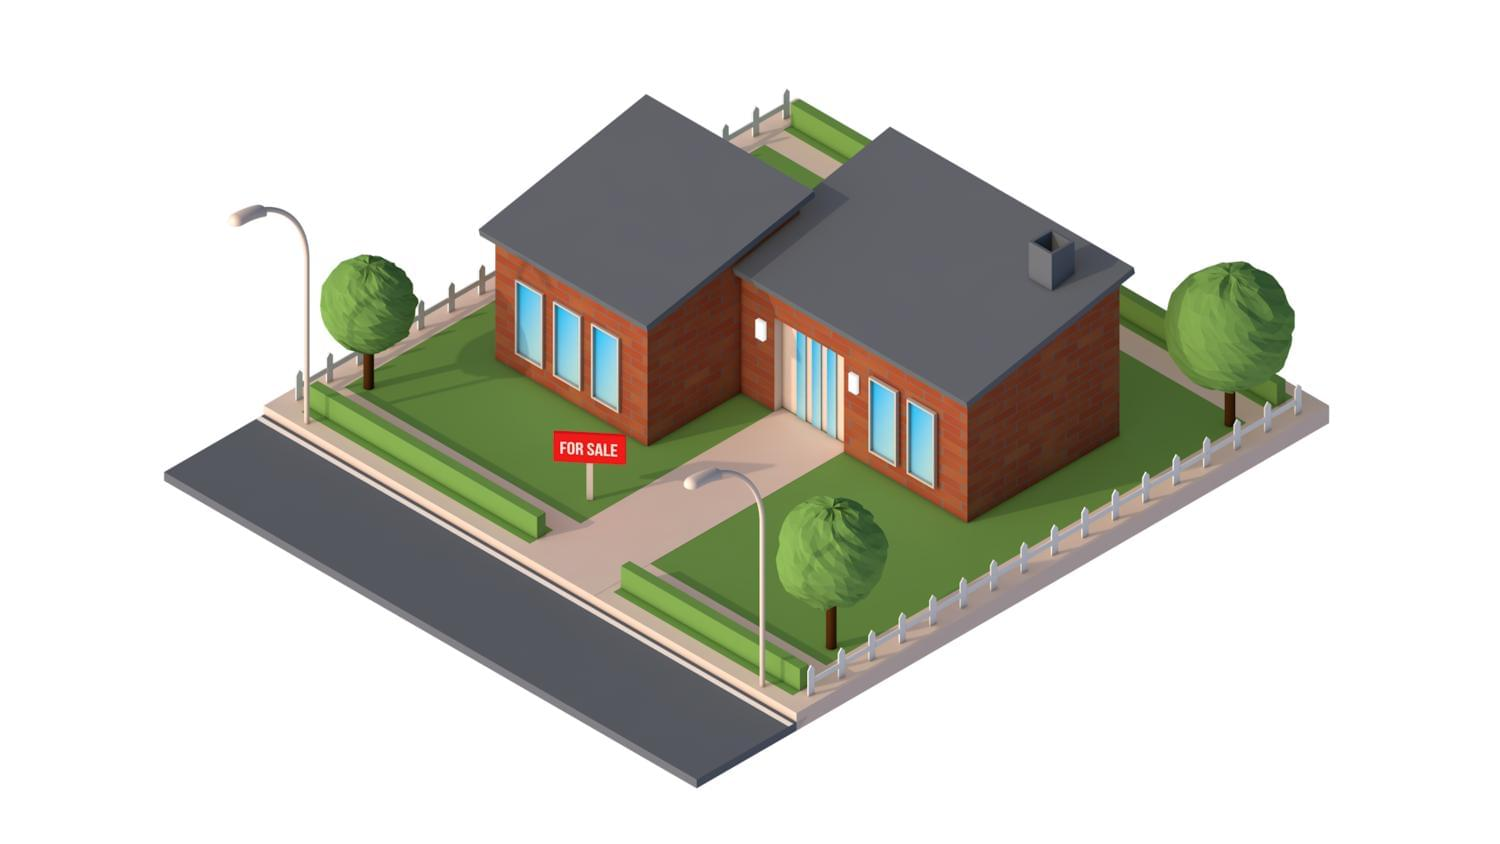 Isometric 3D Building Designs by RenovatioDigital - 111640